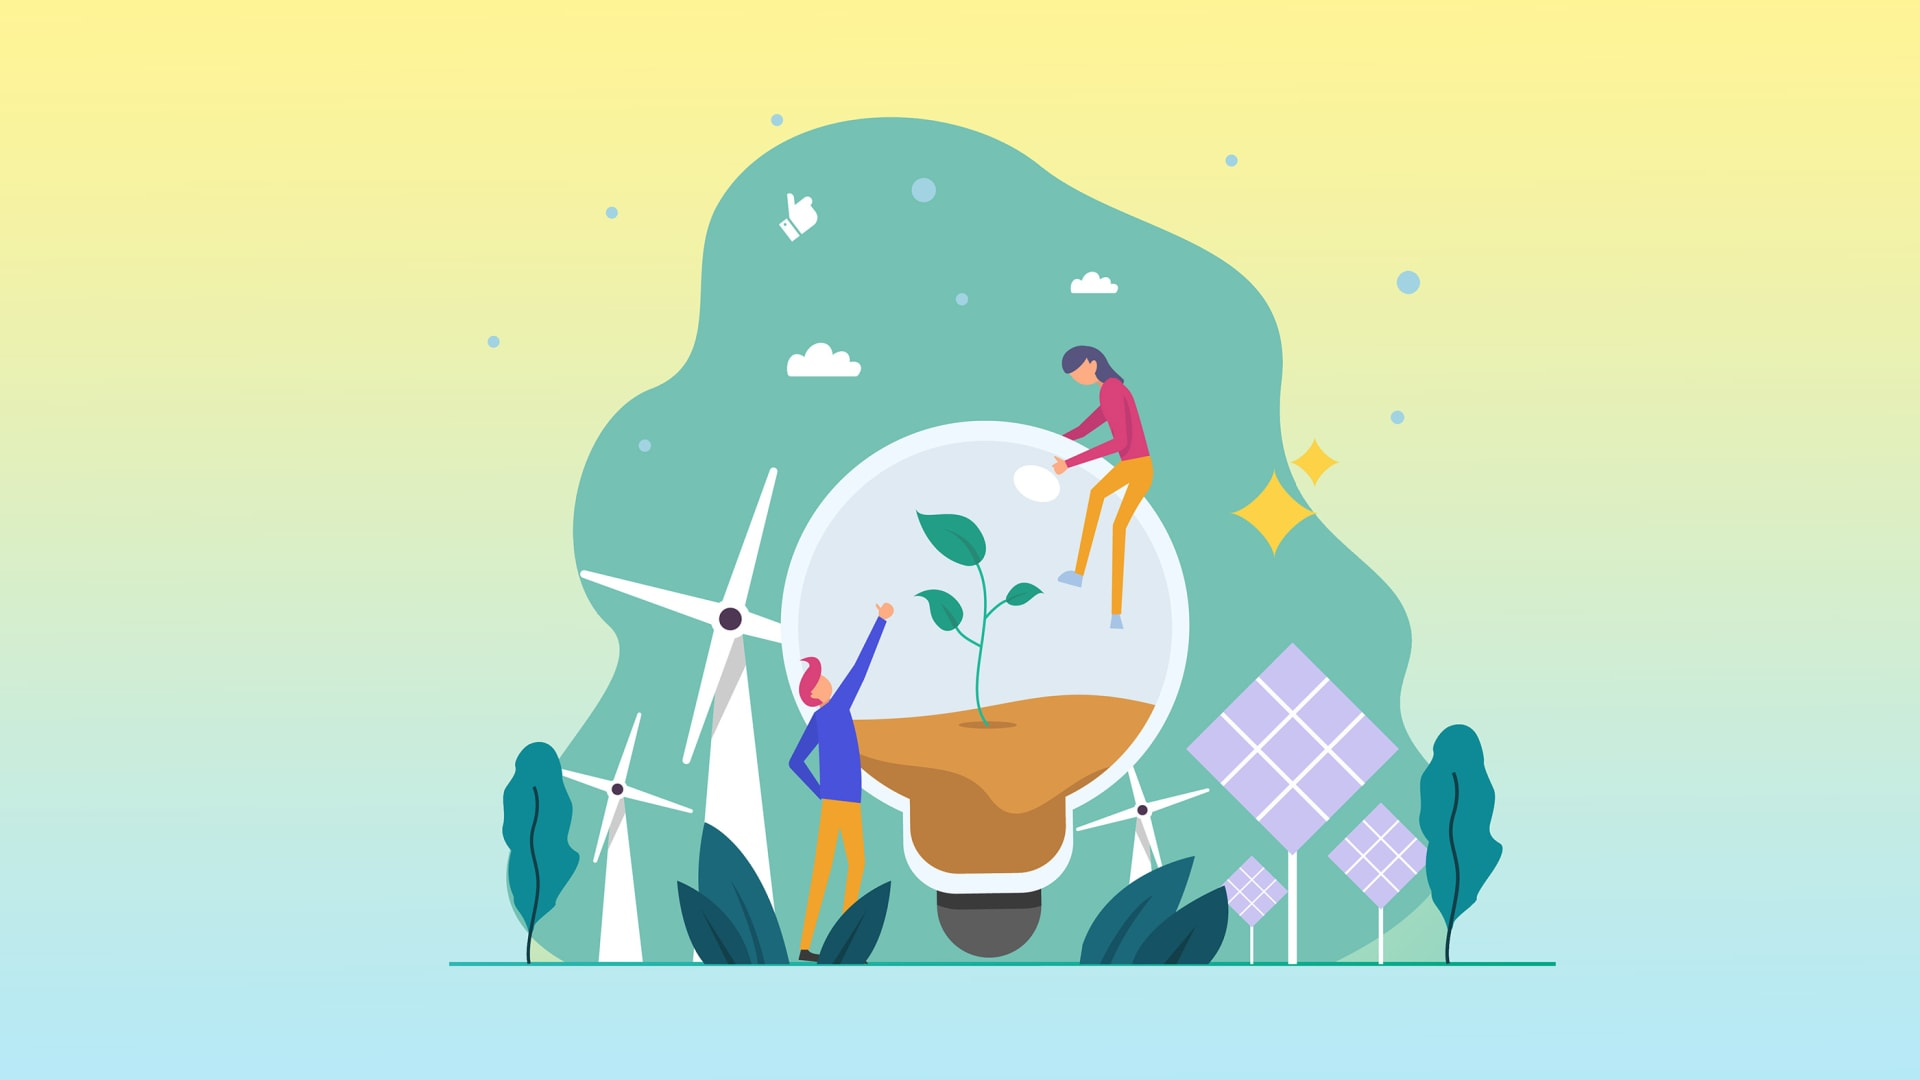 5 Ways to Make Your Business More Socially Conscious